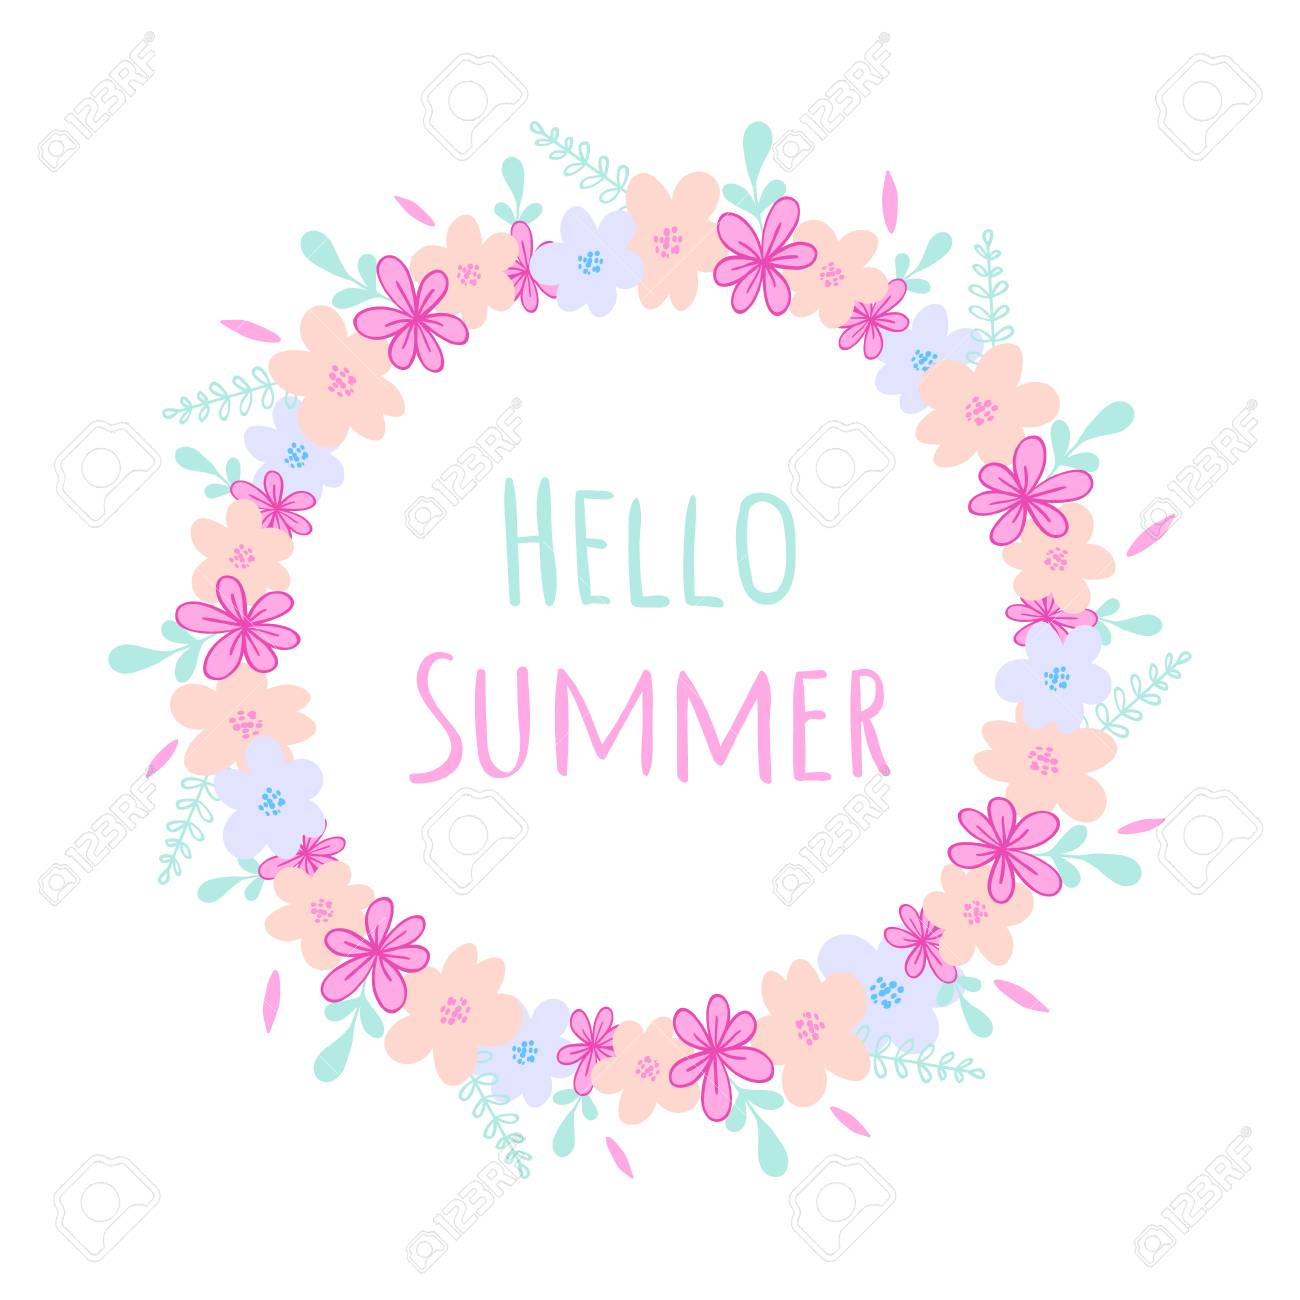 Hello Summer round frame with wild flowers, herbs and leaves isolated on white background. For design, greeting cards, wedding, posters - 97072458